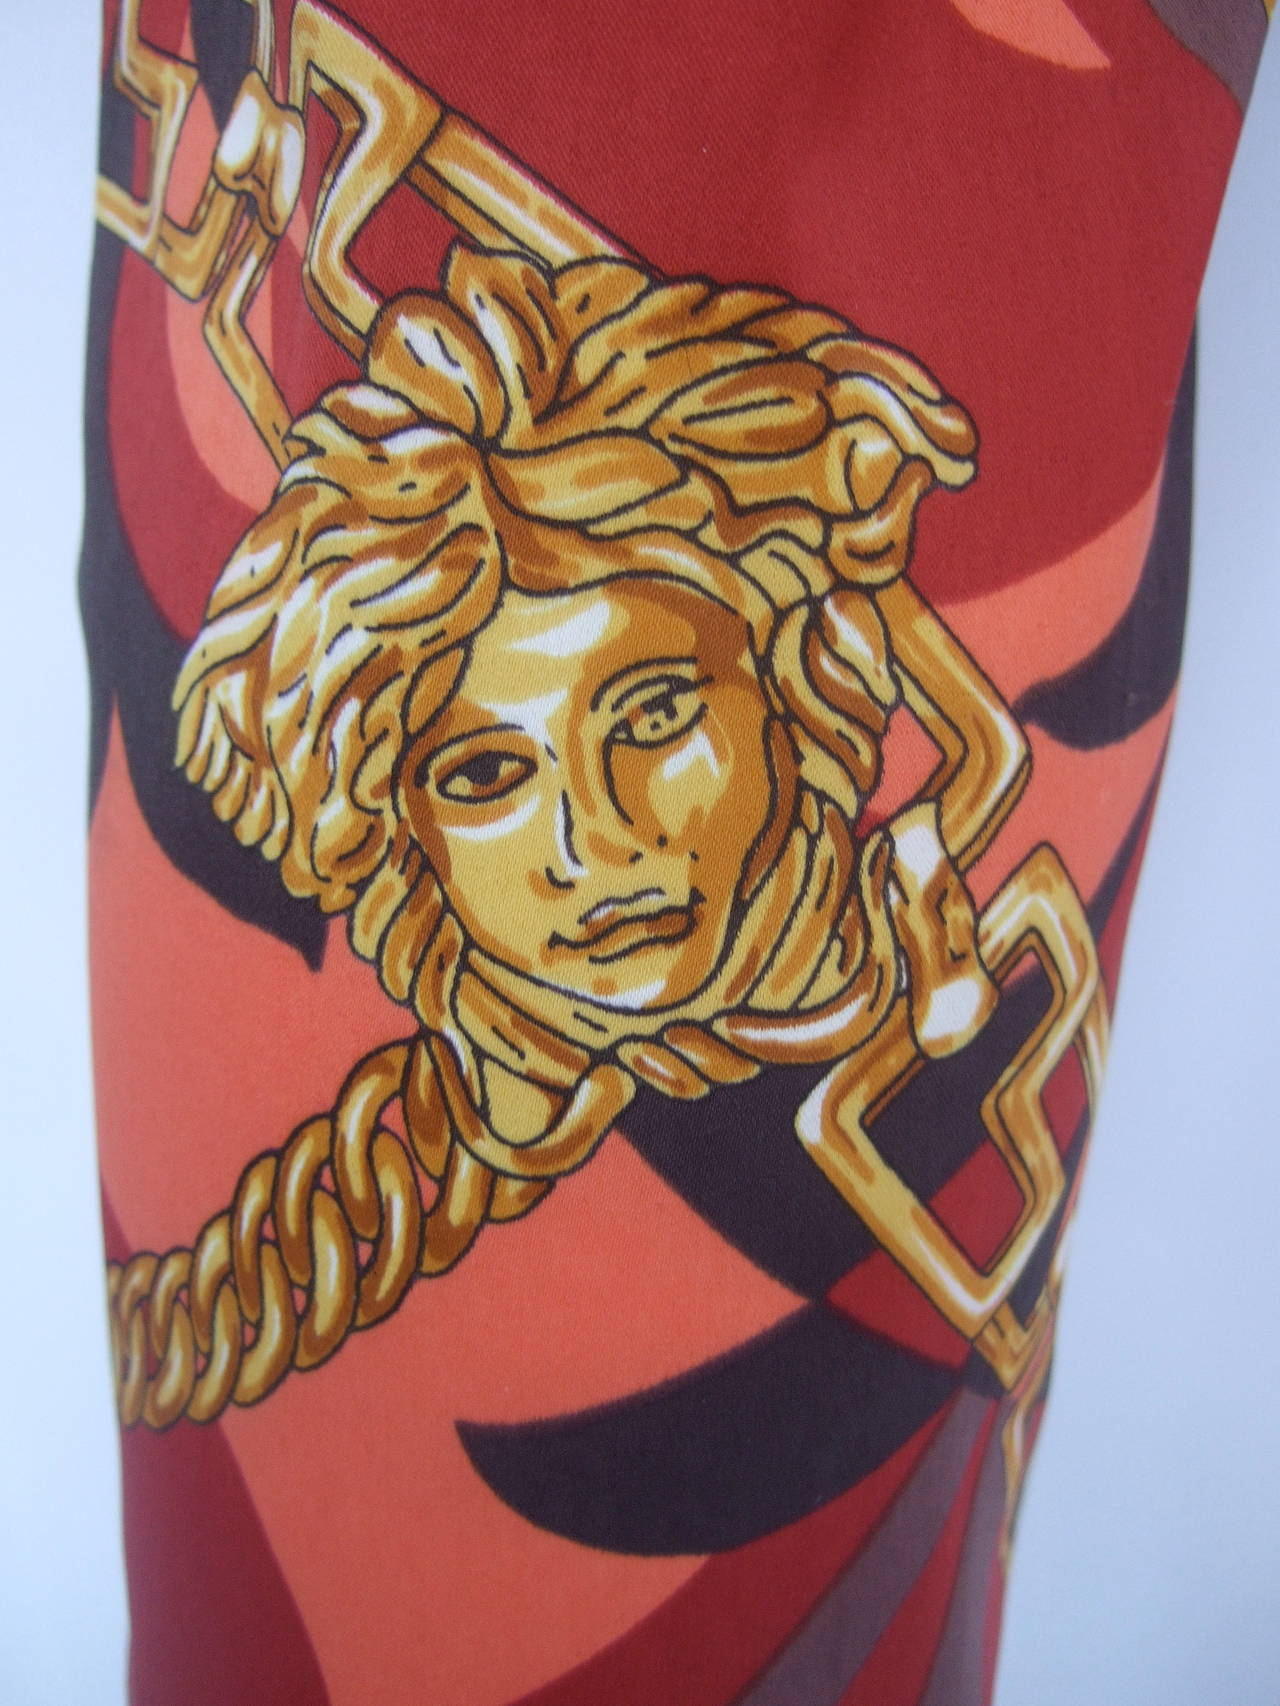 Versace Iconic medusa graphic print stretch jeans couture Size 28 The bold print is collage of Versace's signature Medusa's with lions & gold chains throughout. The background is a field of burnt orange, tangerine with reddish brown colors. The